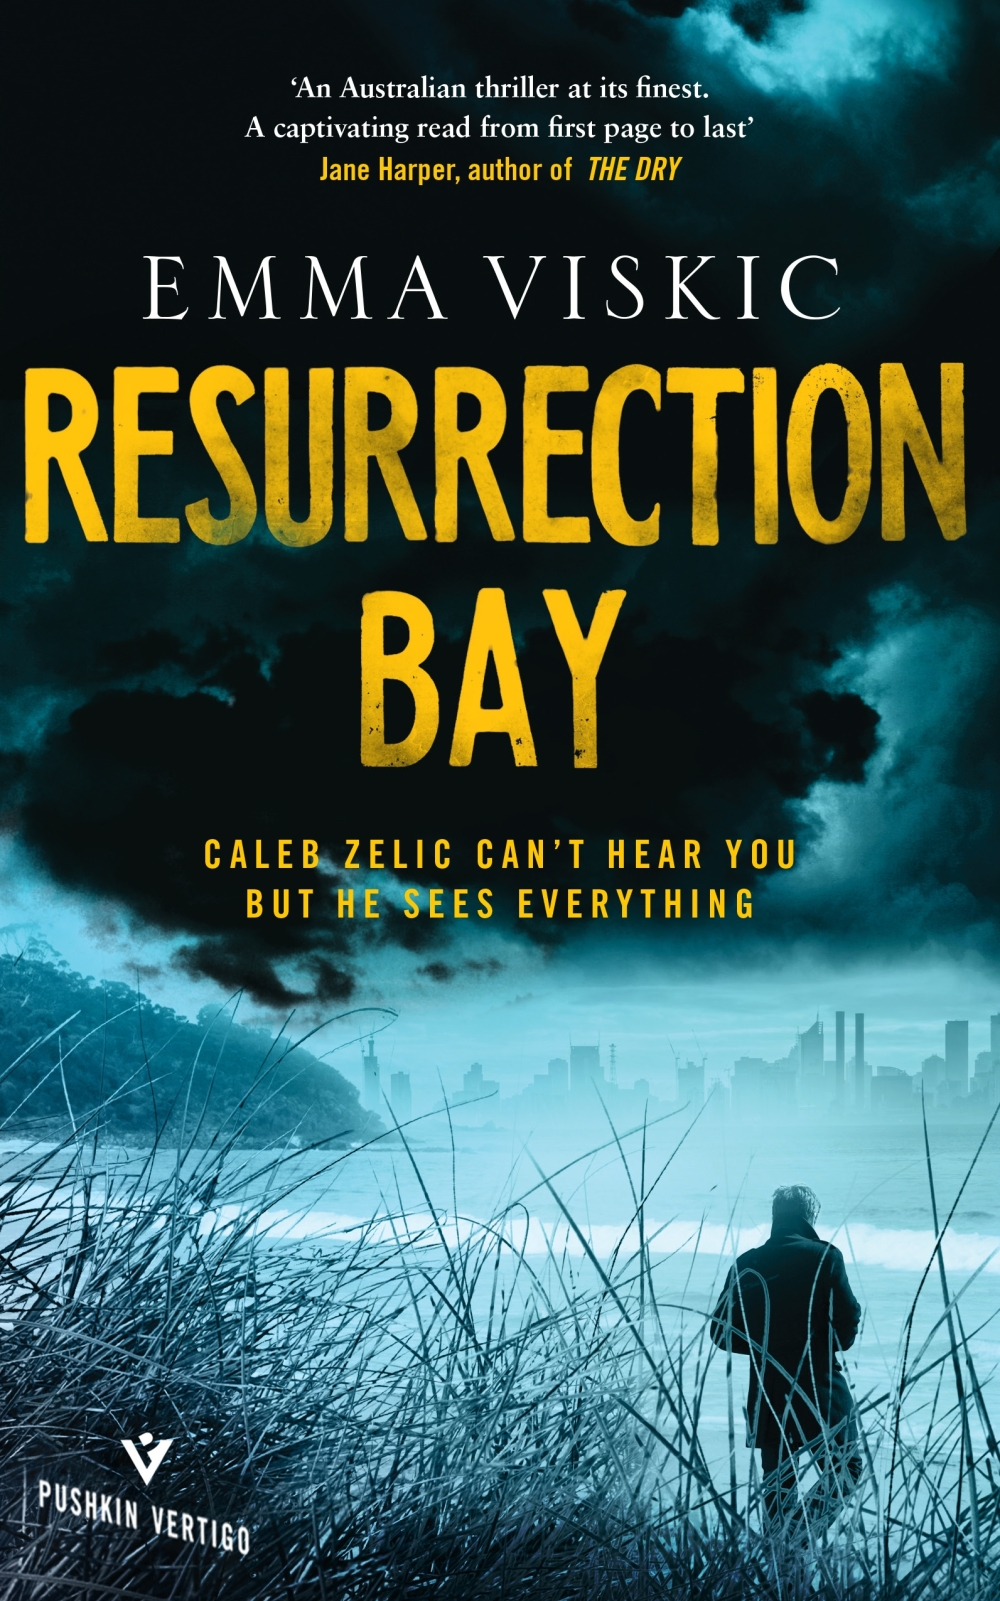 Resurrection Bay by Emma Viskic book review by Dave Lancaster for Hits the Fan blog